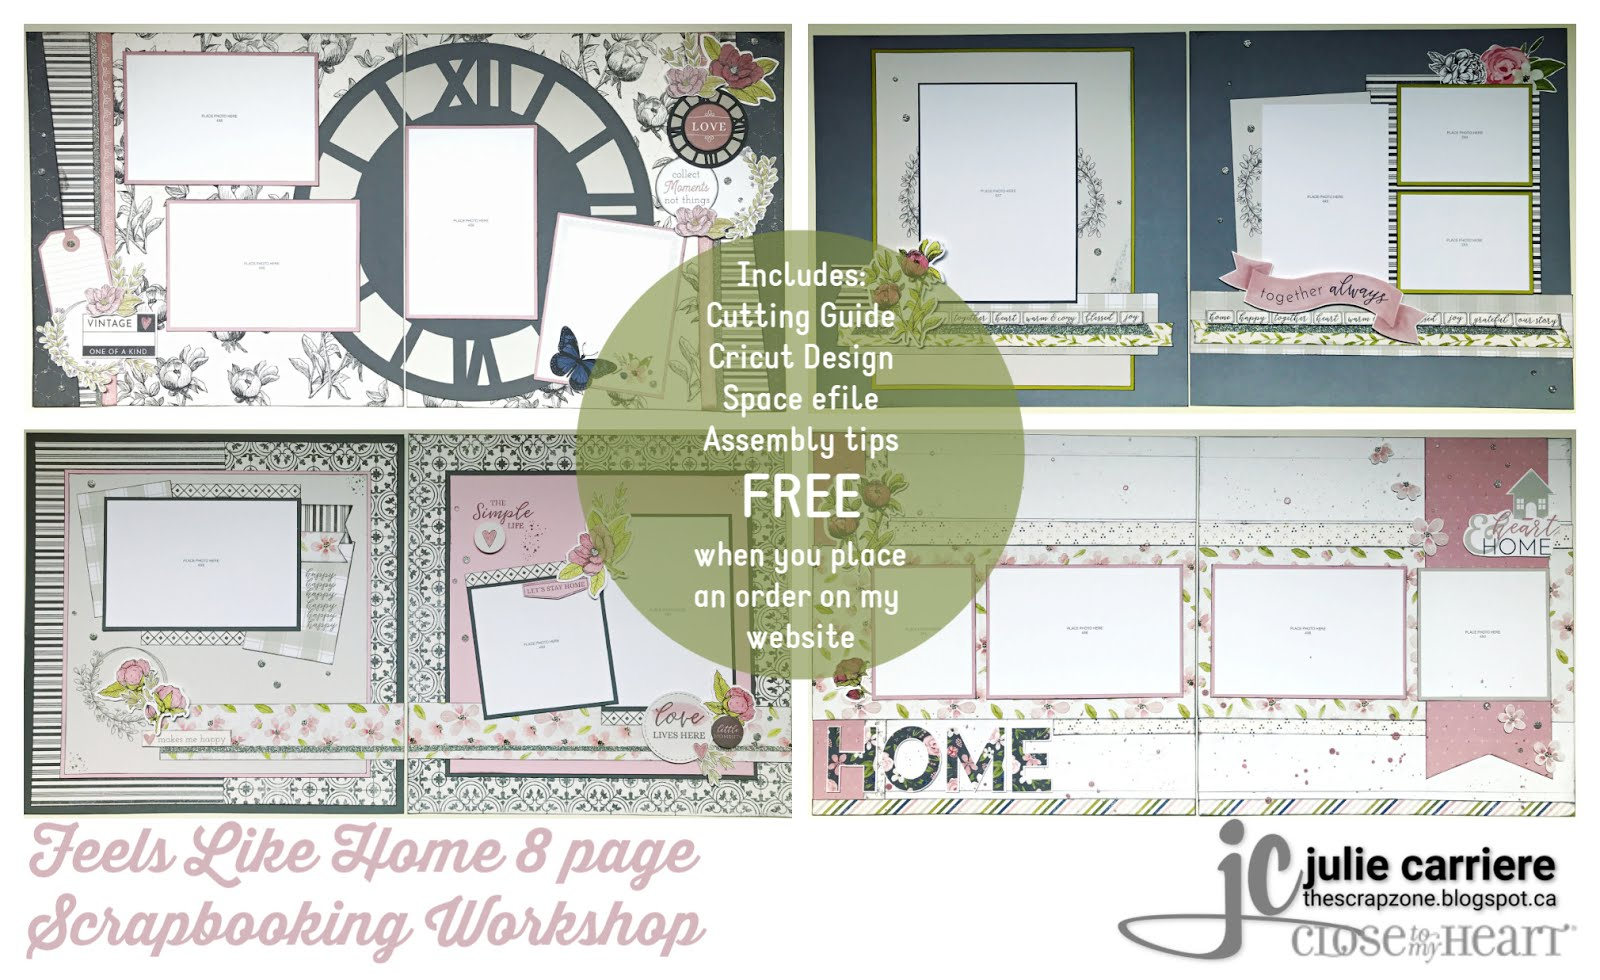 Feels Like Home scrapbooking assembly guide